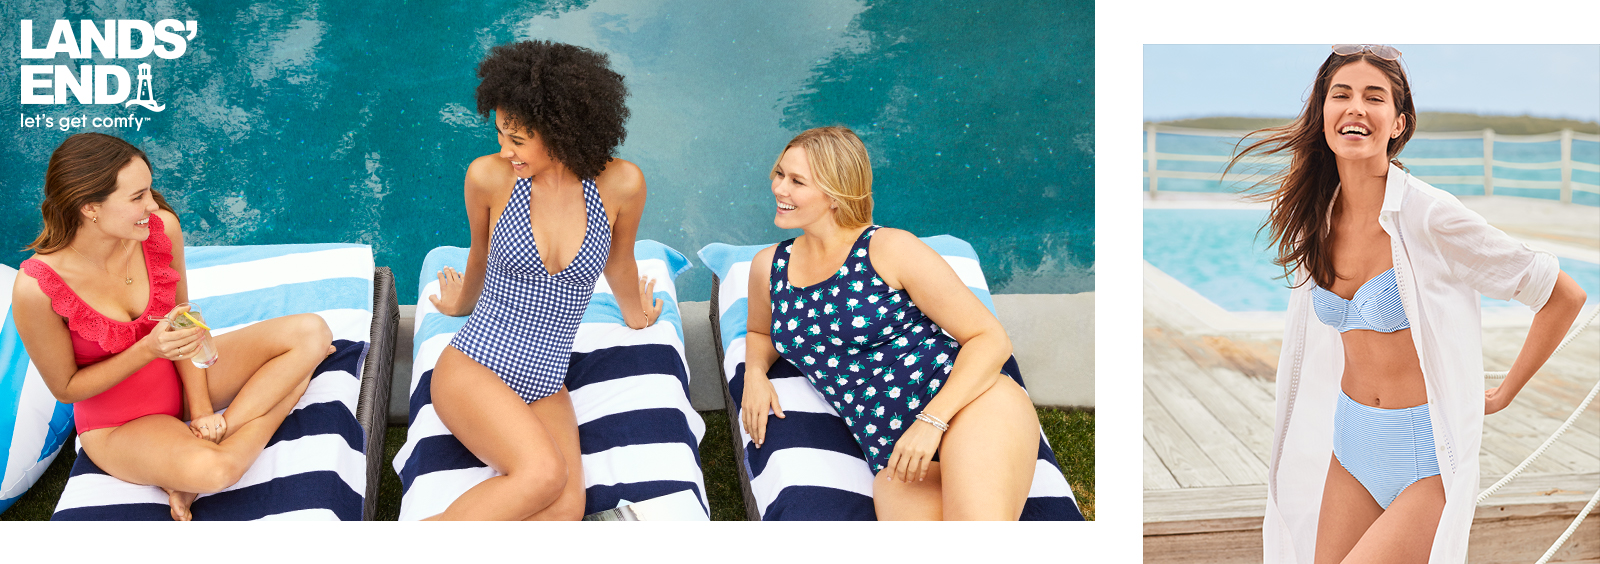 Best Robes to Wear When Getting Out of the Pool